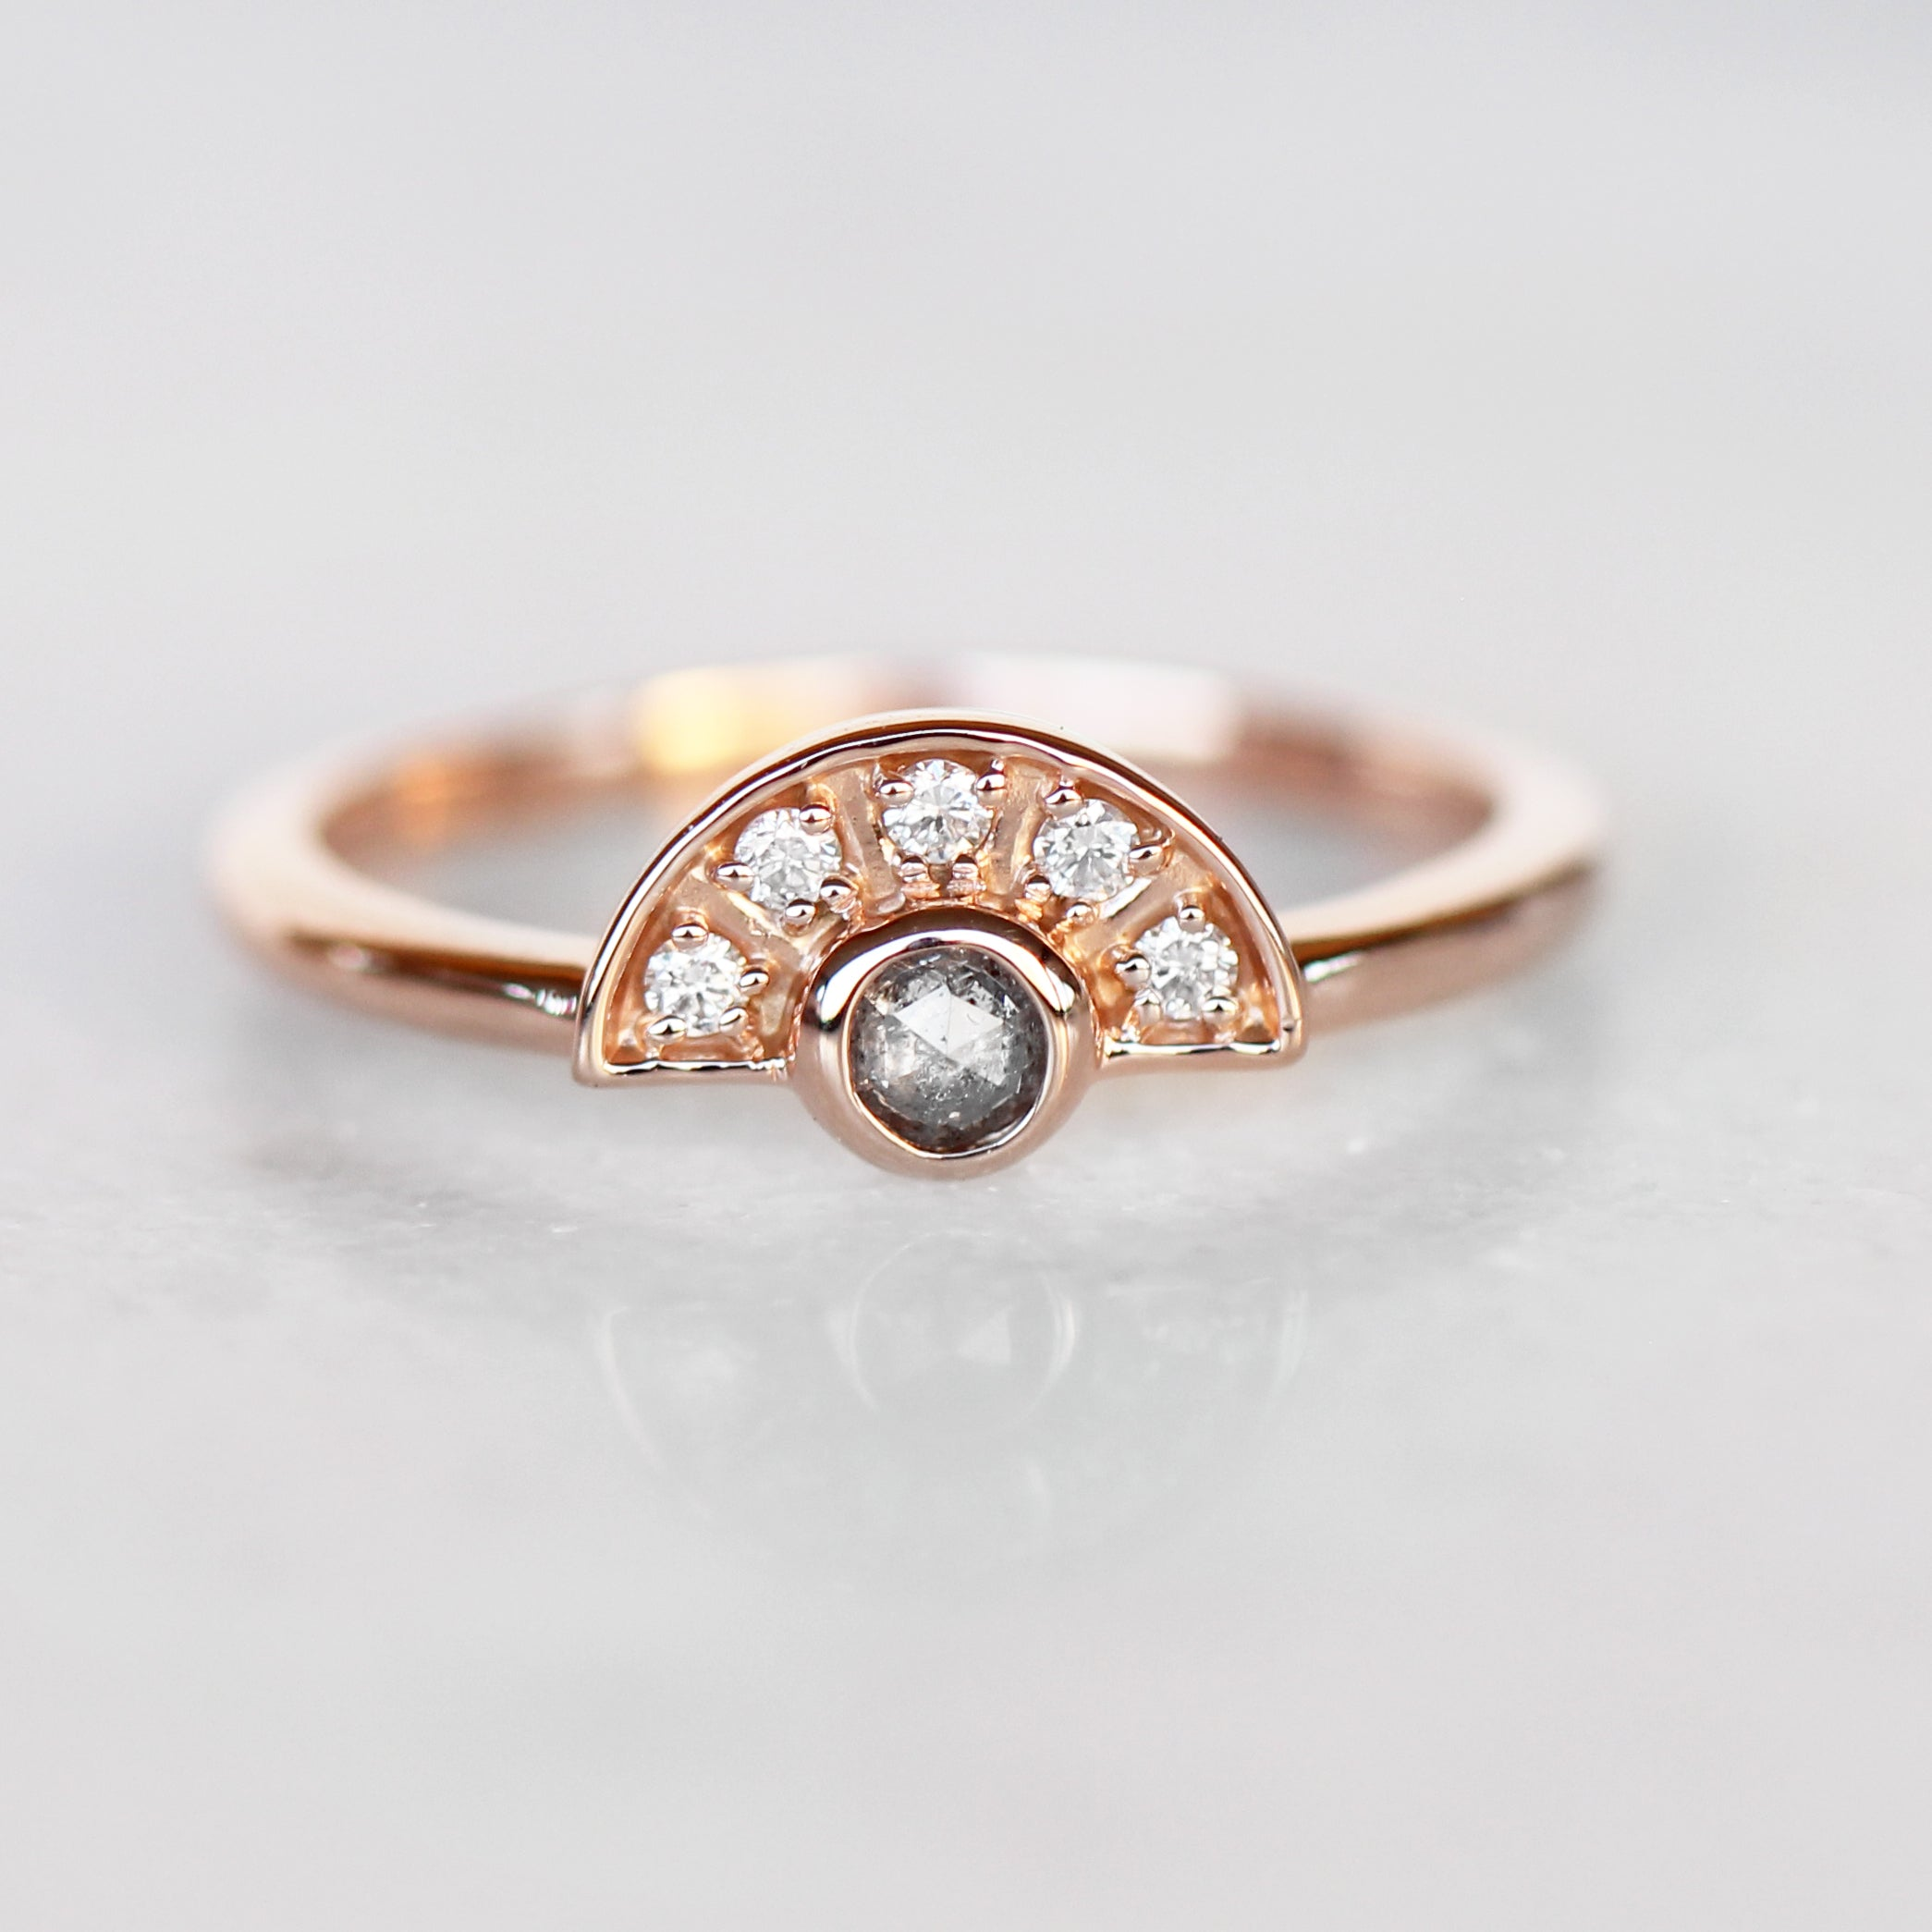 Dottie Ring with Round Gray Celestial Diamond Stackable or Wedding band- Ready to Size and Ship - Celestial Diamonds ® by Midwinter Co.